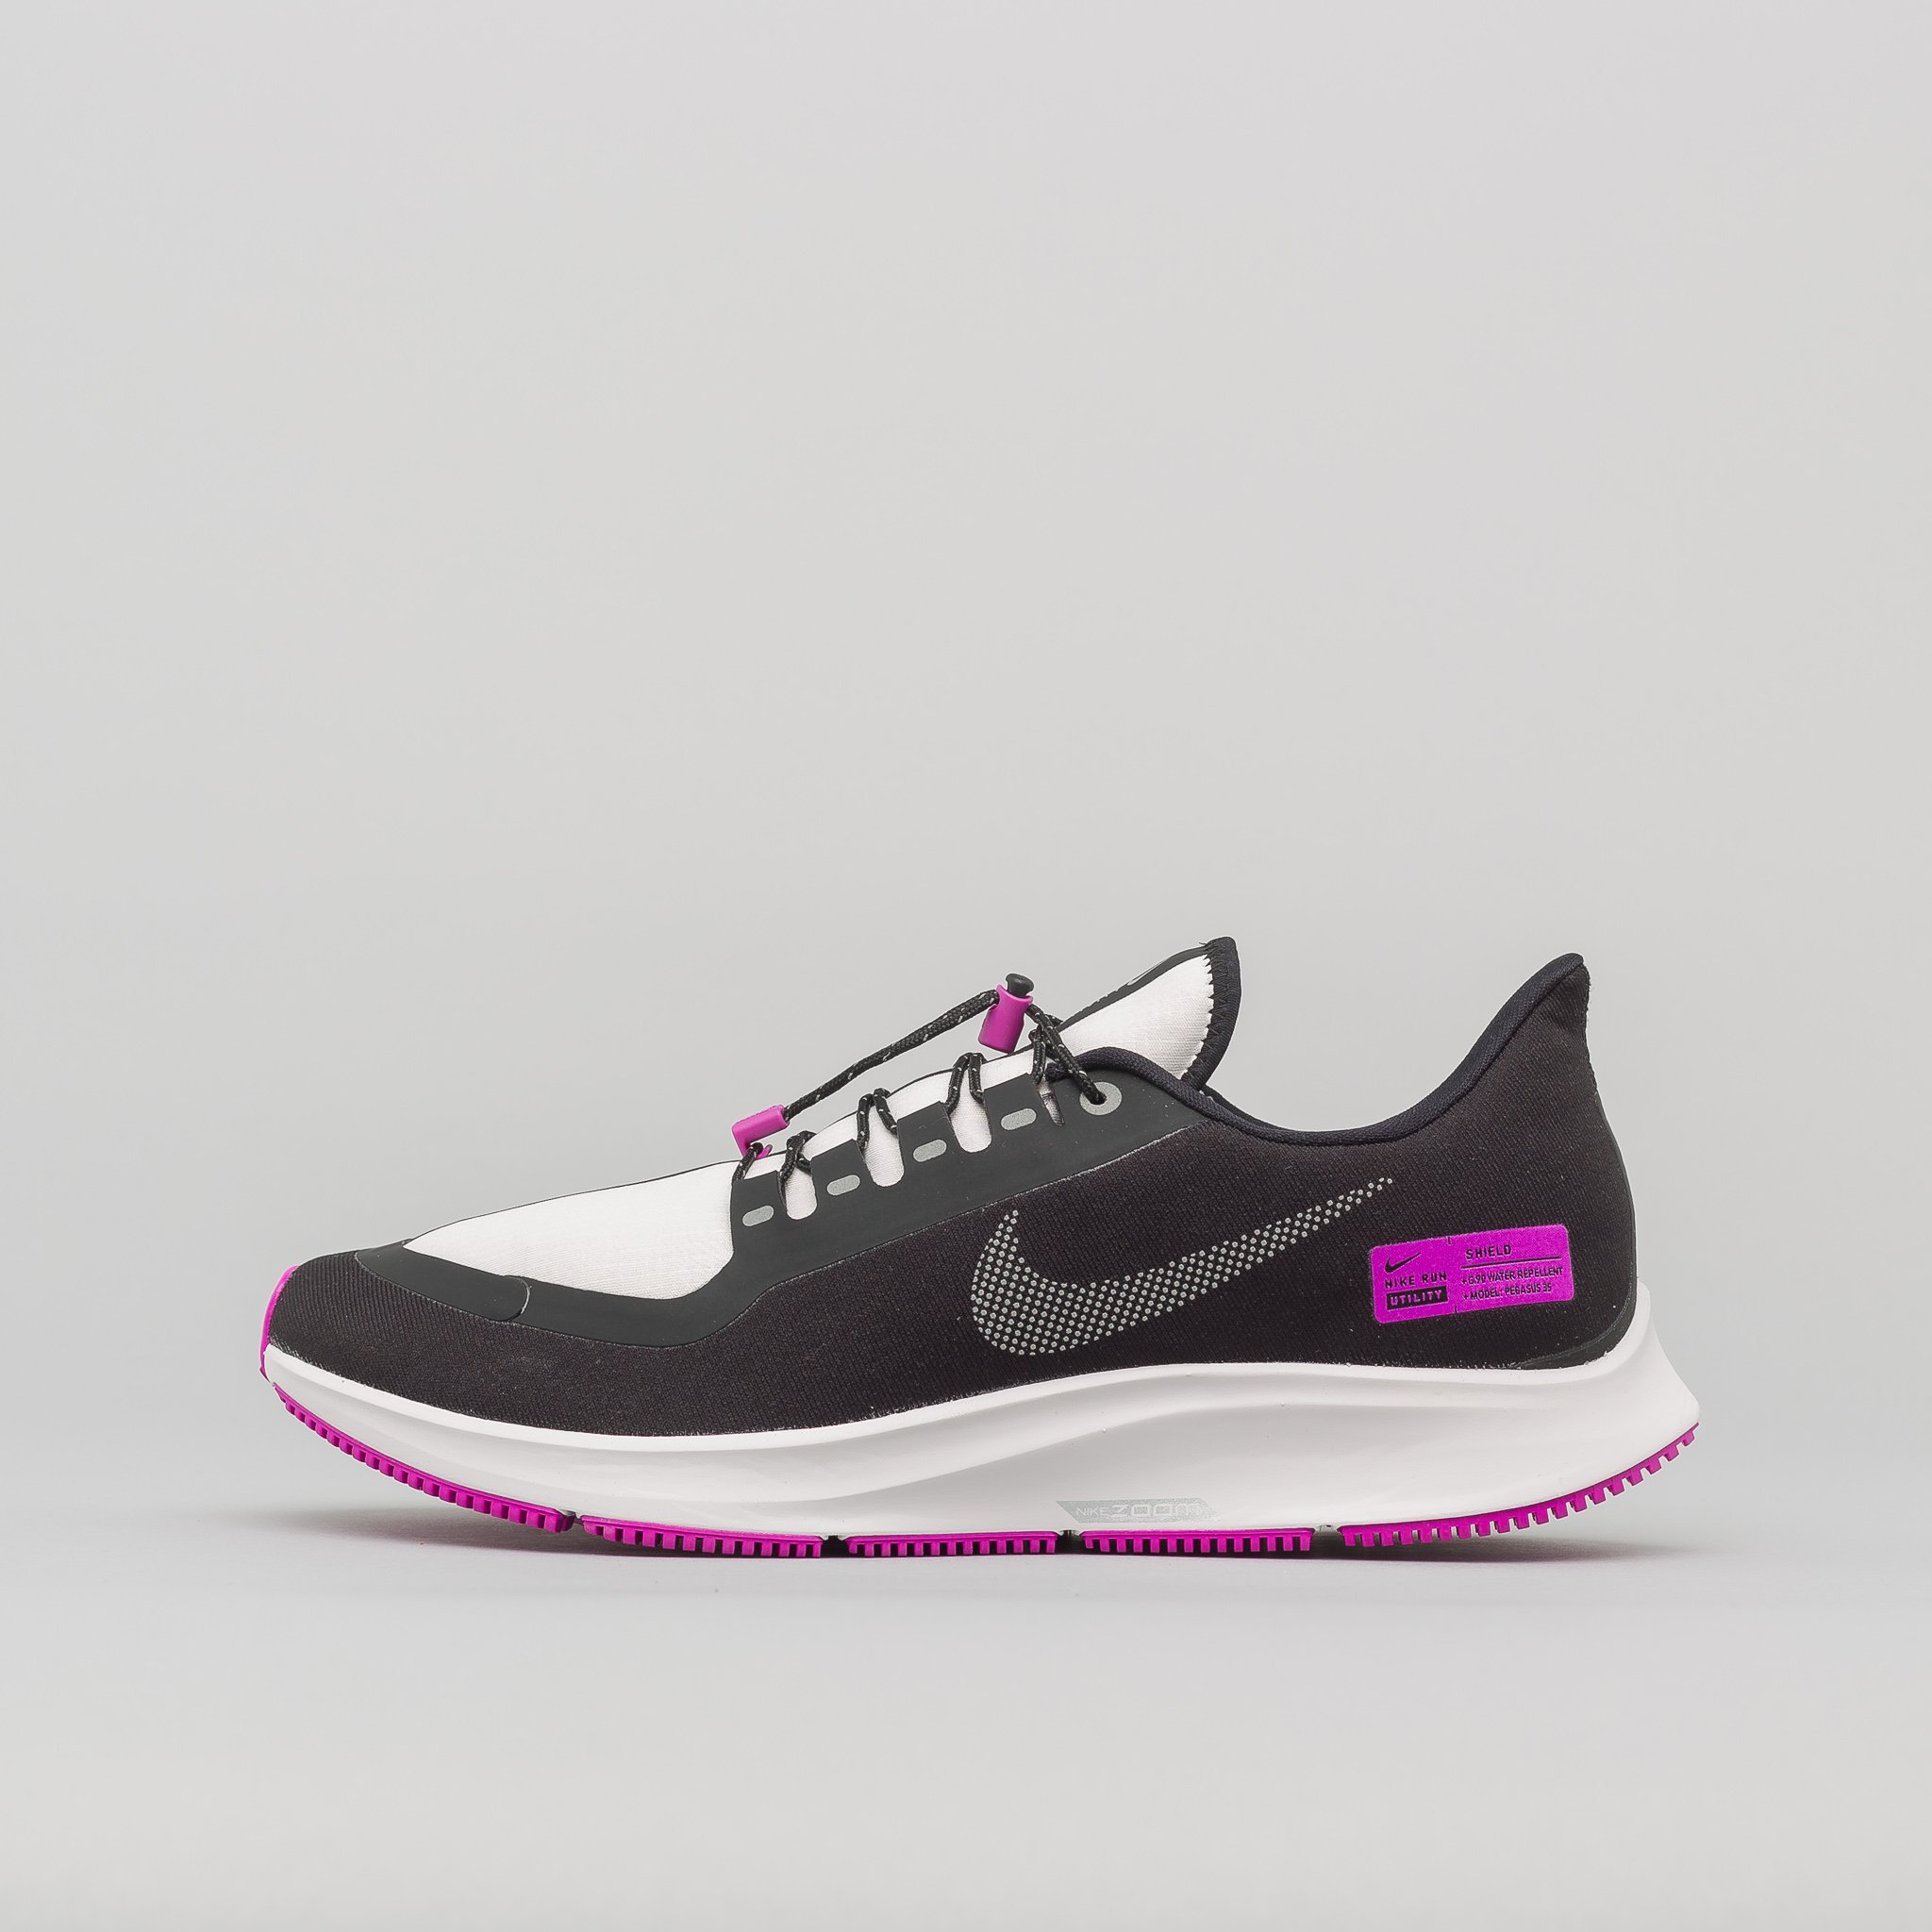 NOTRE-CHICAGO-NIKE-AIR-ZOOM-PEGASUS-35-SHIELD-NRG-3018 2048x2048